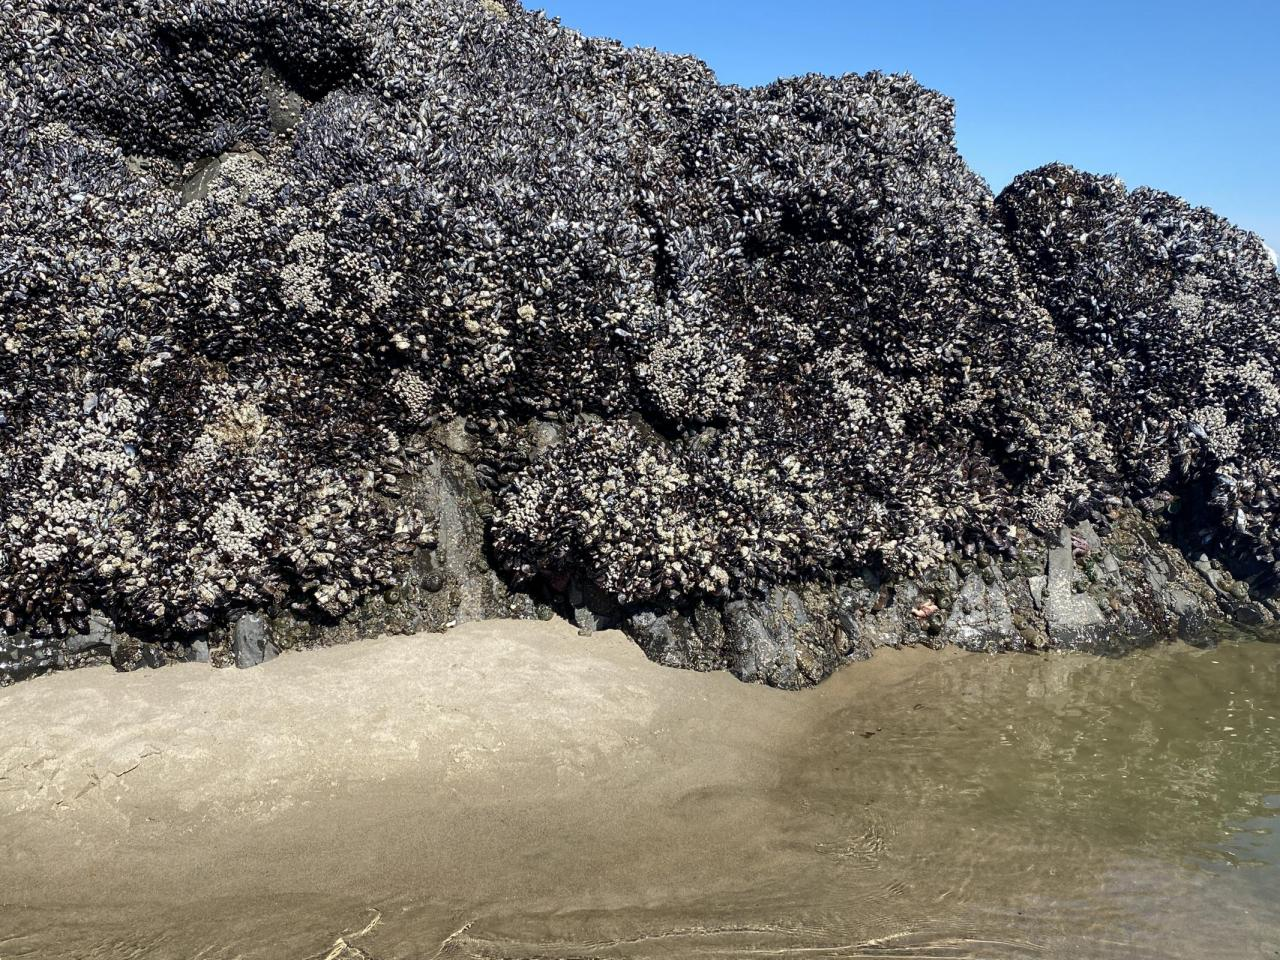 Chinook Winds rocks at -1.5 tide showing fewer than normal sea star population.